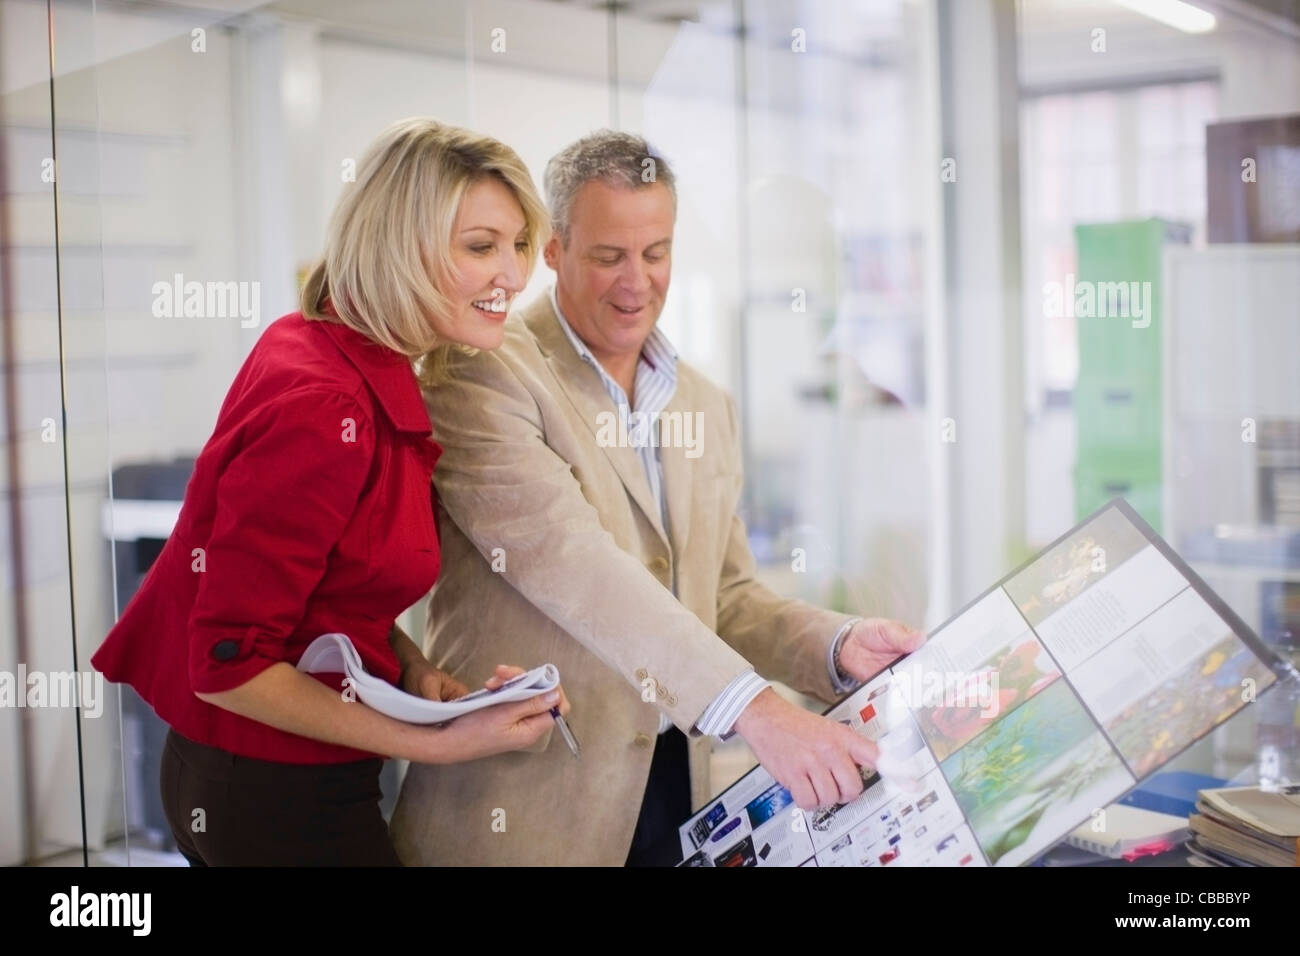 Business people examining project - Stock Image